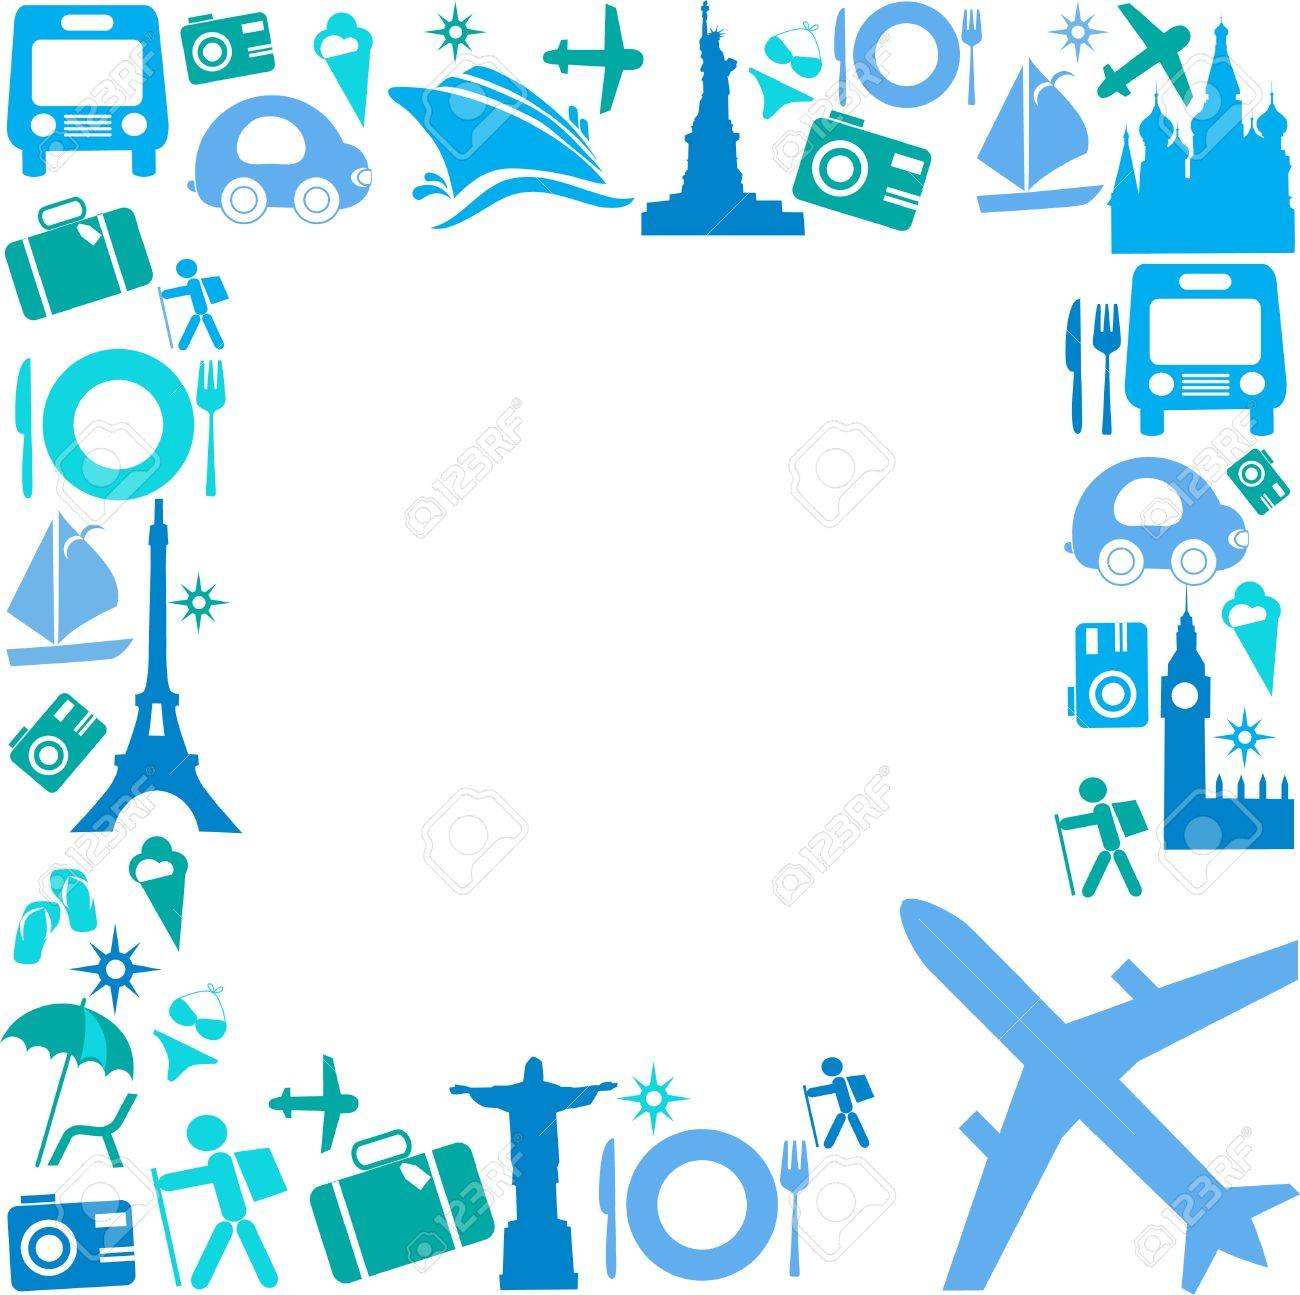 Frame with Travel icons - 12895517